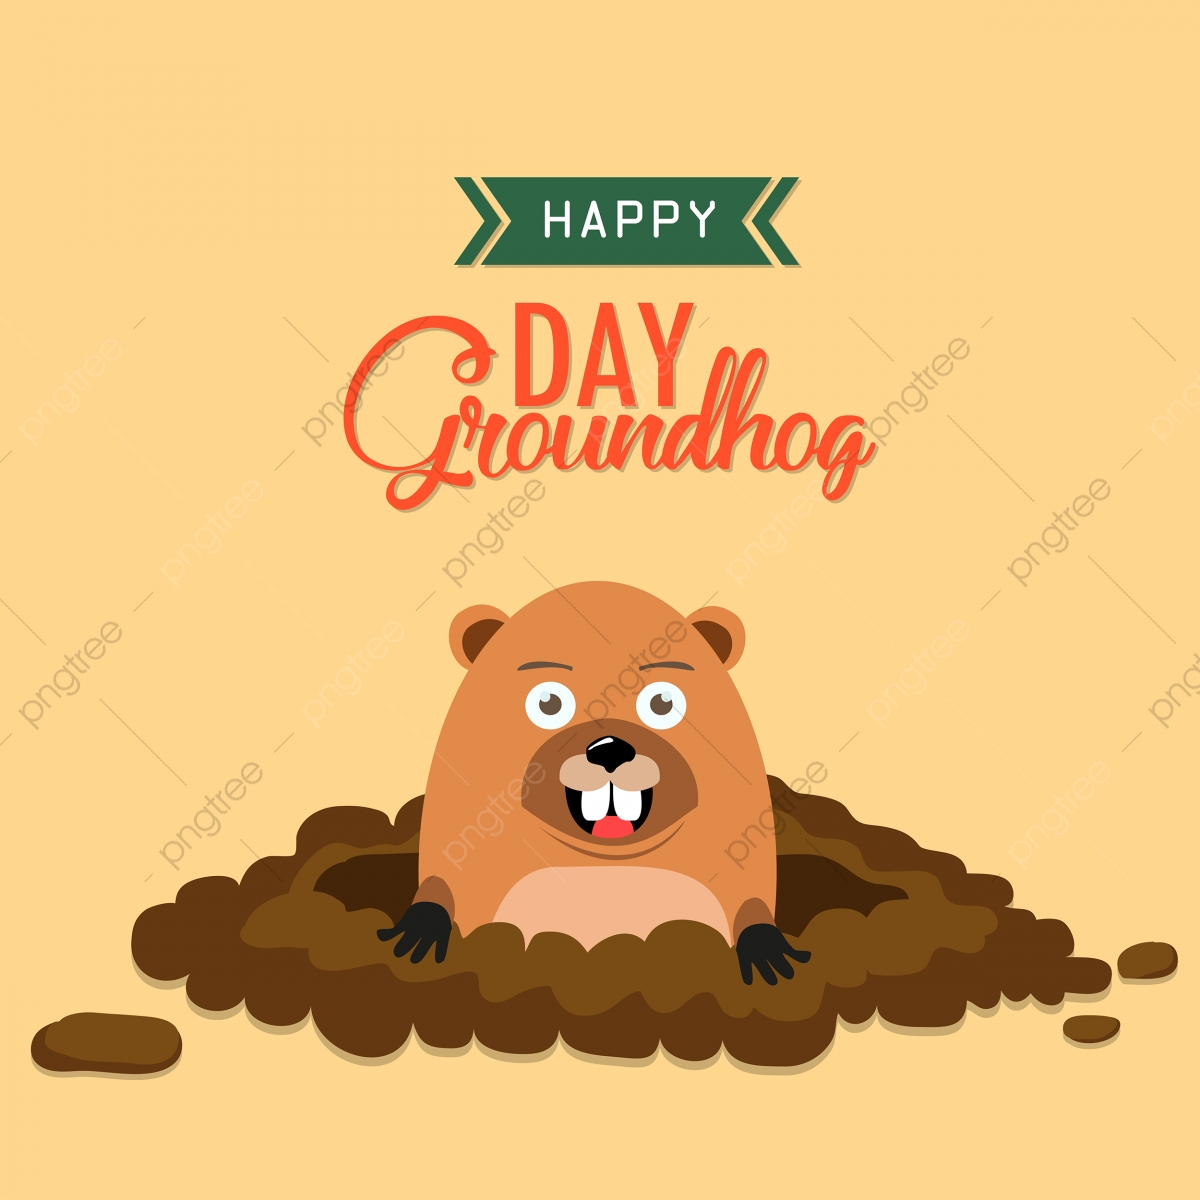 Groundhog clipart vector. Day animal beaver brown